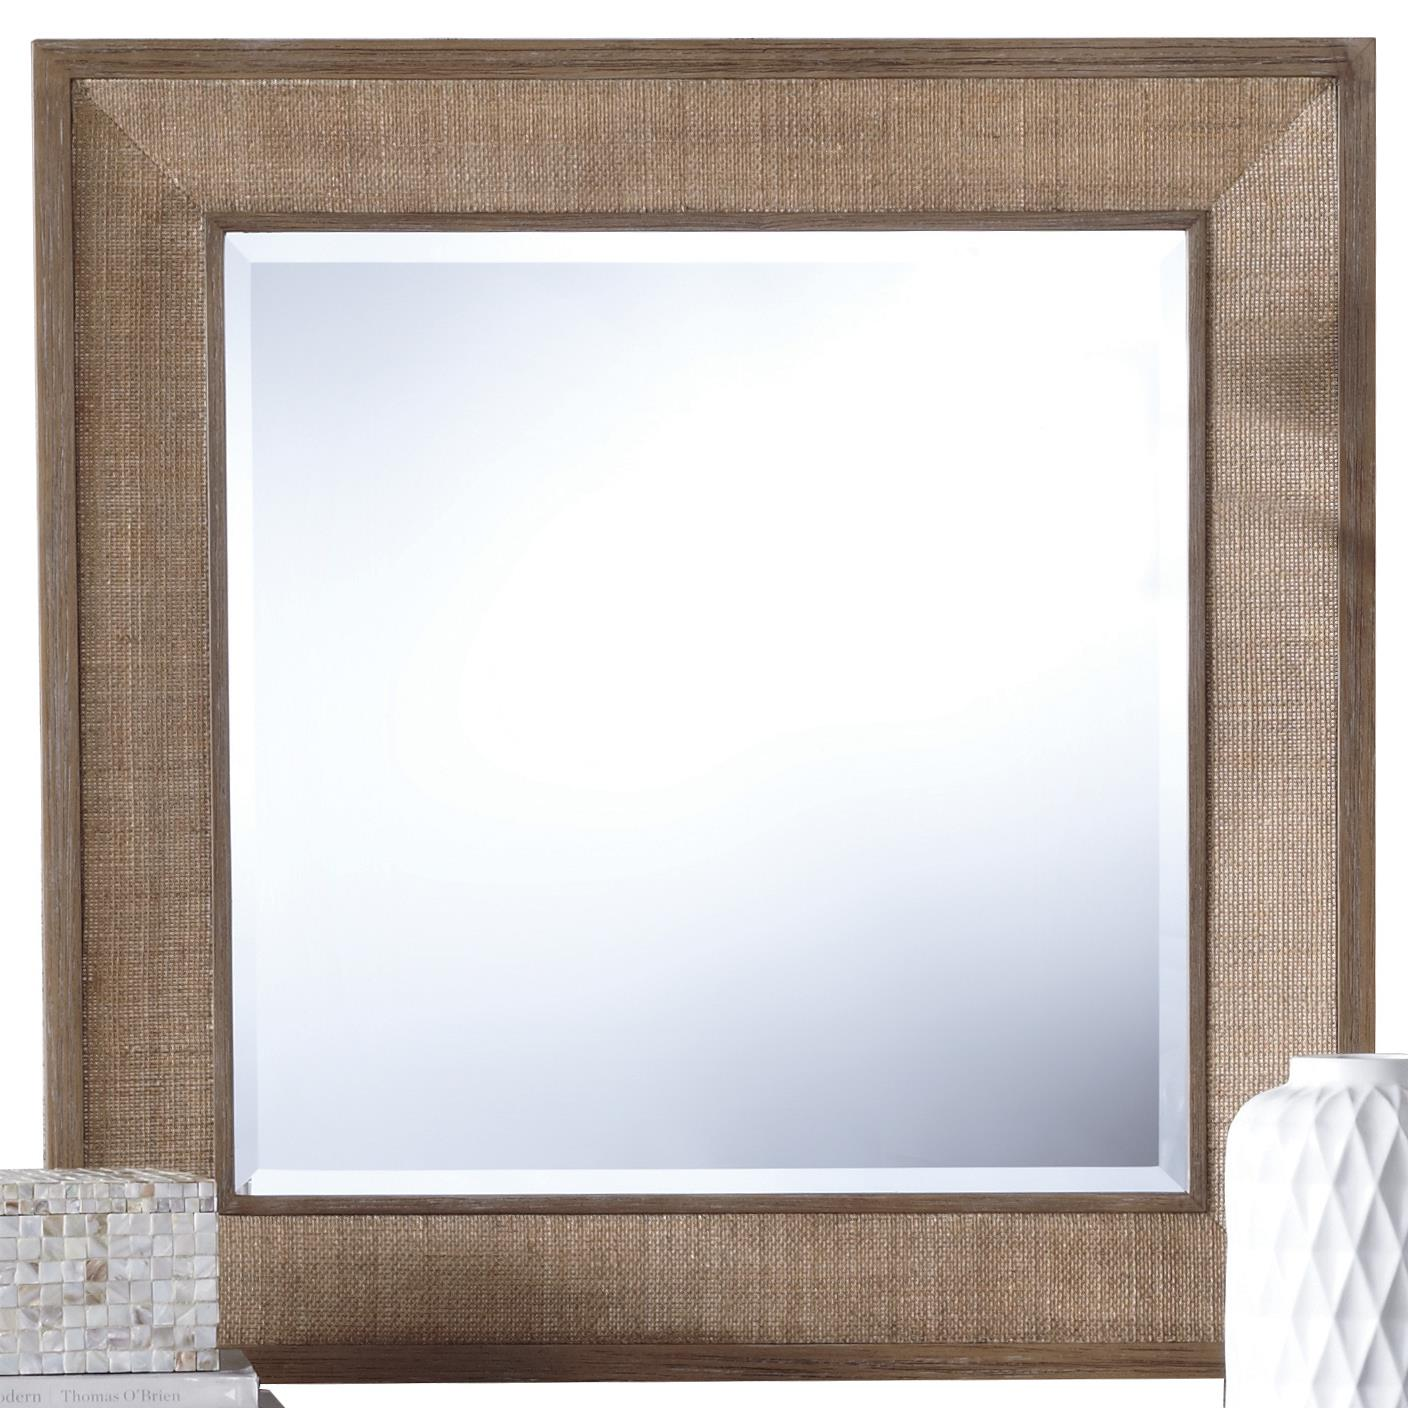 Riverside Furniture Mirabelle Accent Mirror - Item Number: 26263